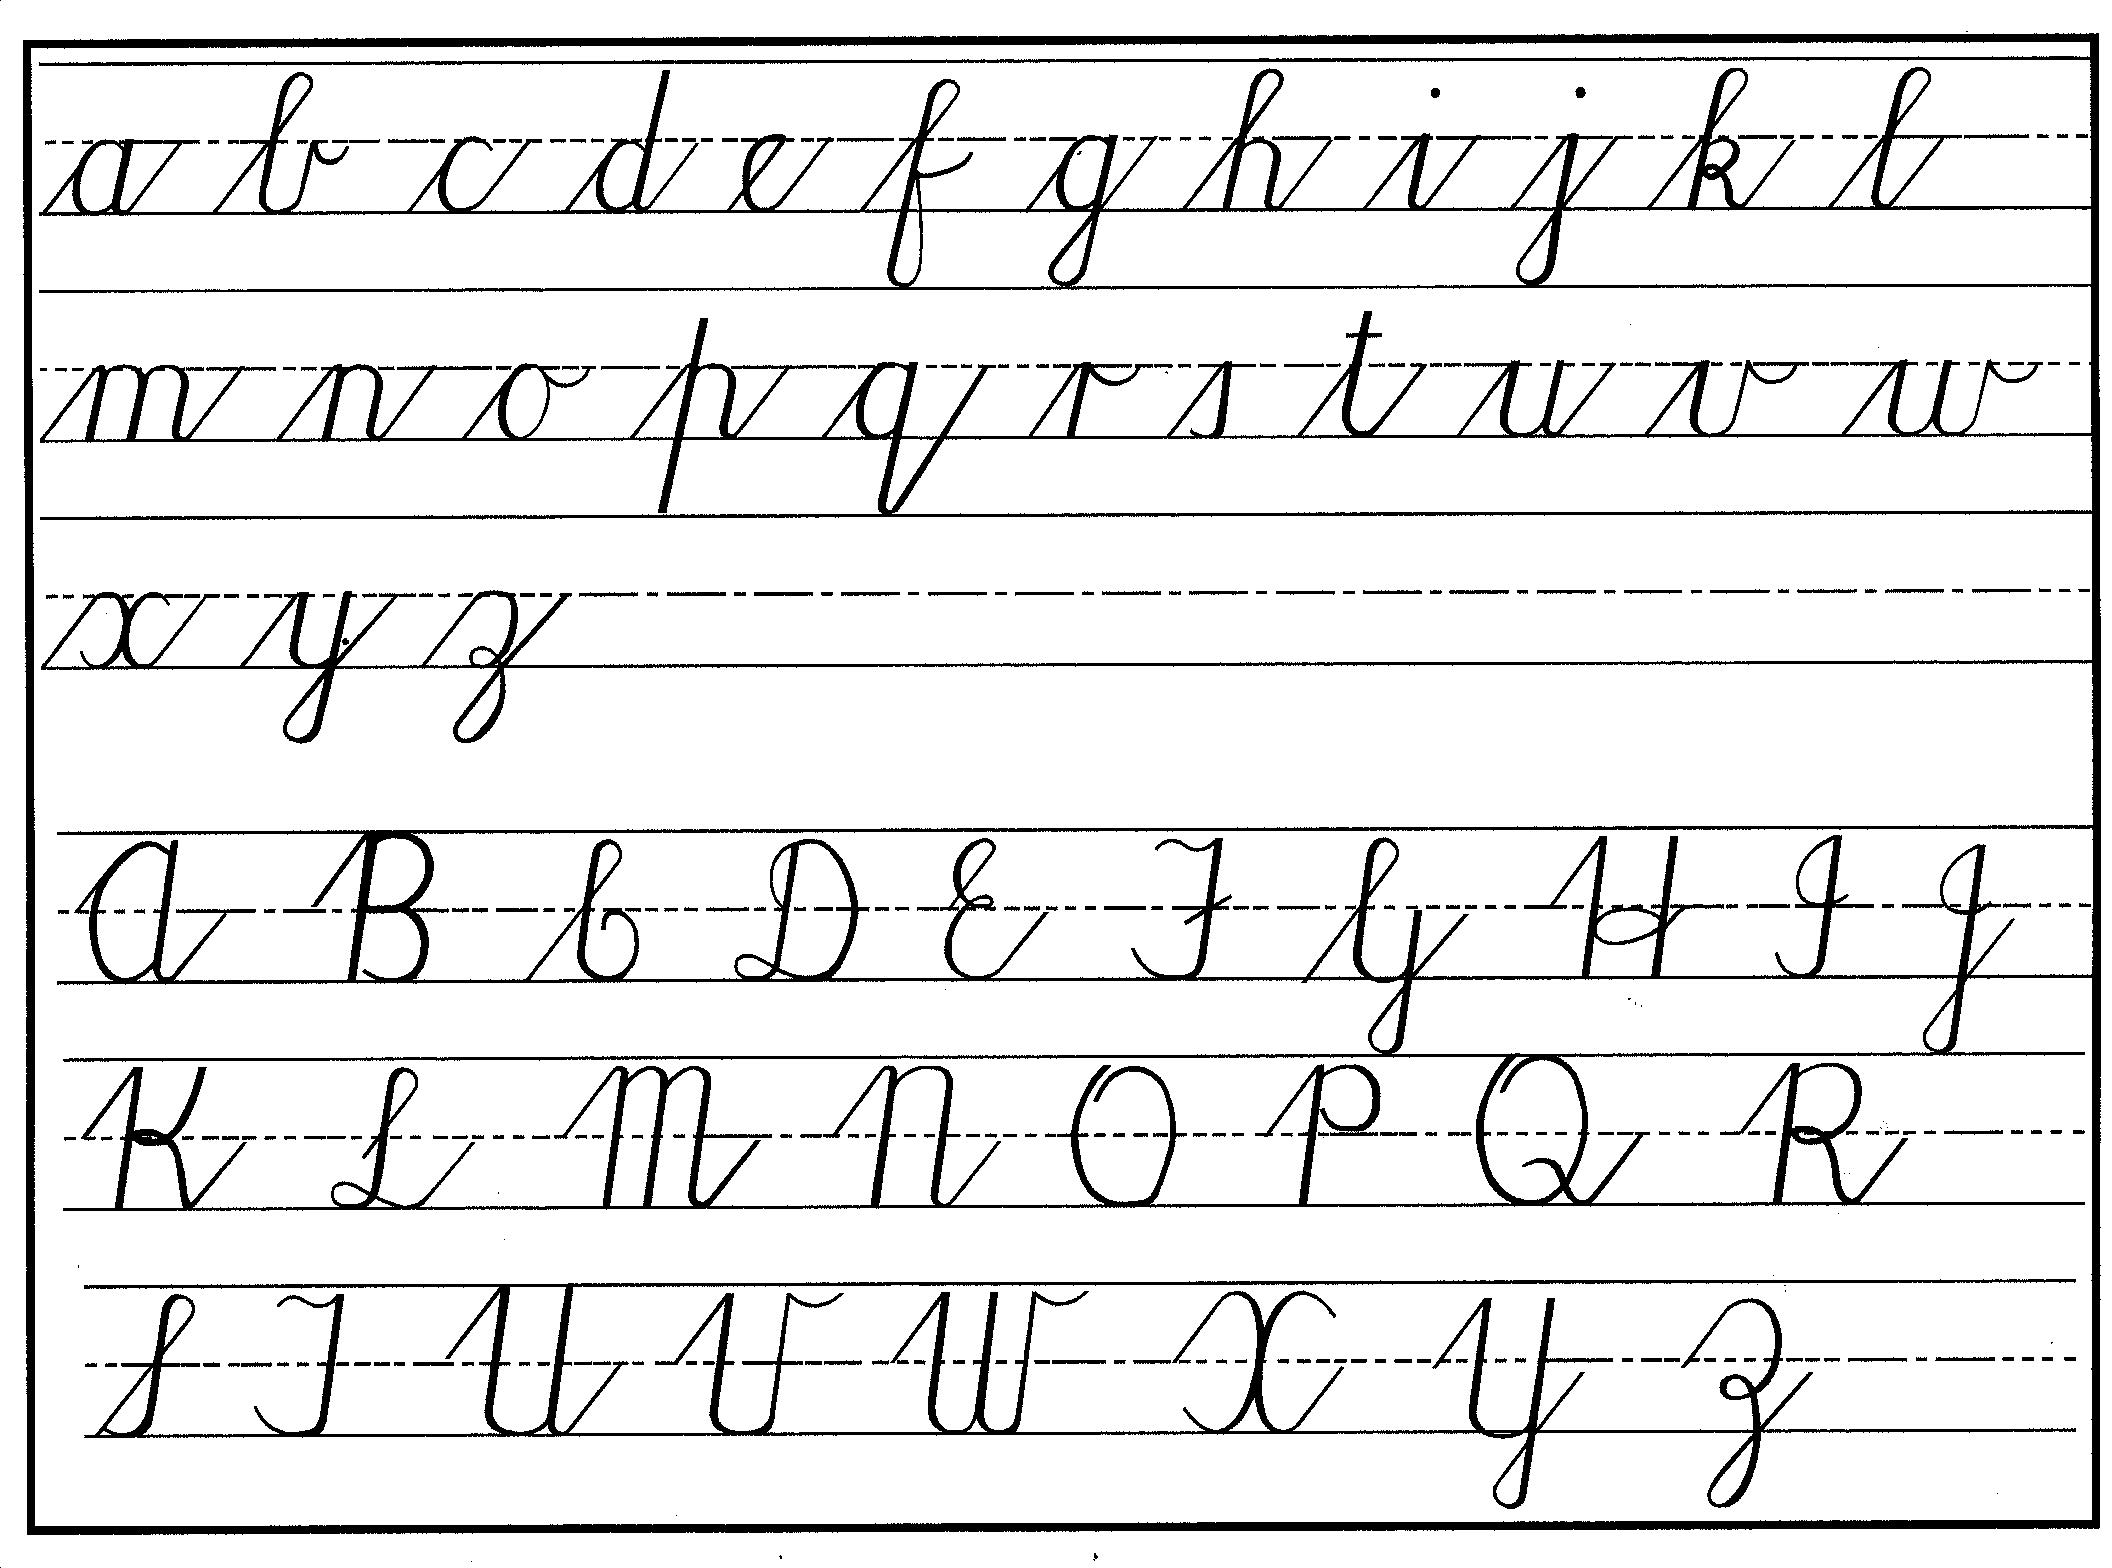 Worksheet Alphabet In Cursive Handwriting cursive handwriting step by for beginners practical pages we use laminated charts instead of books or programs